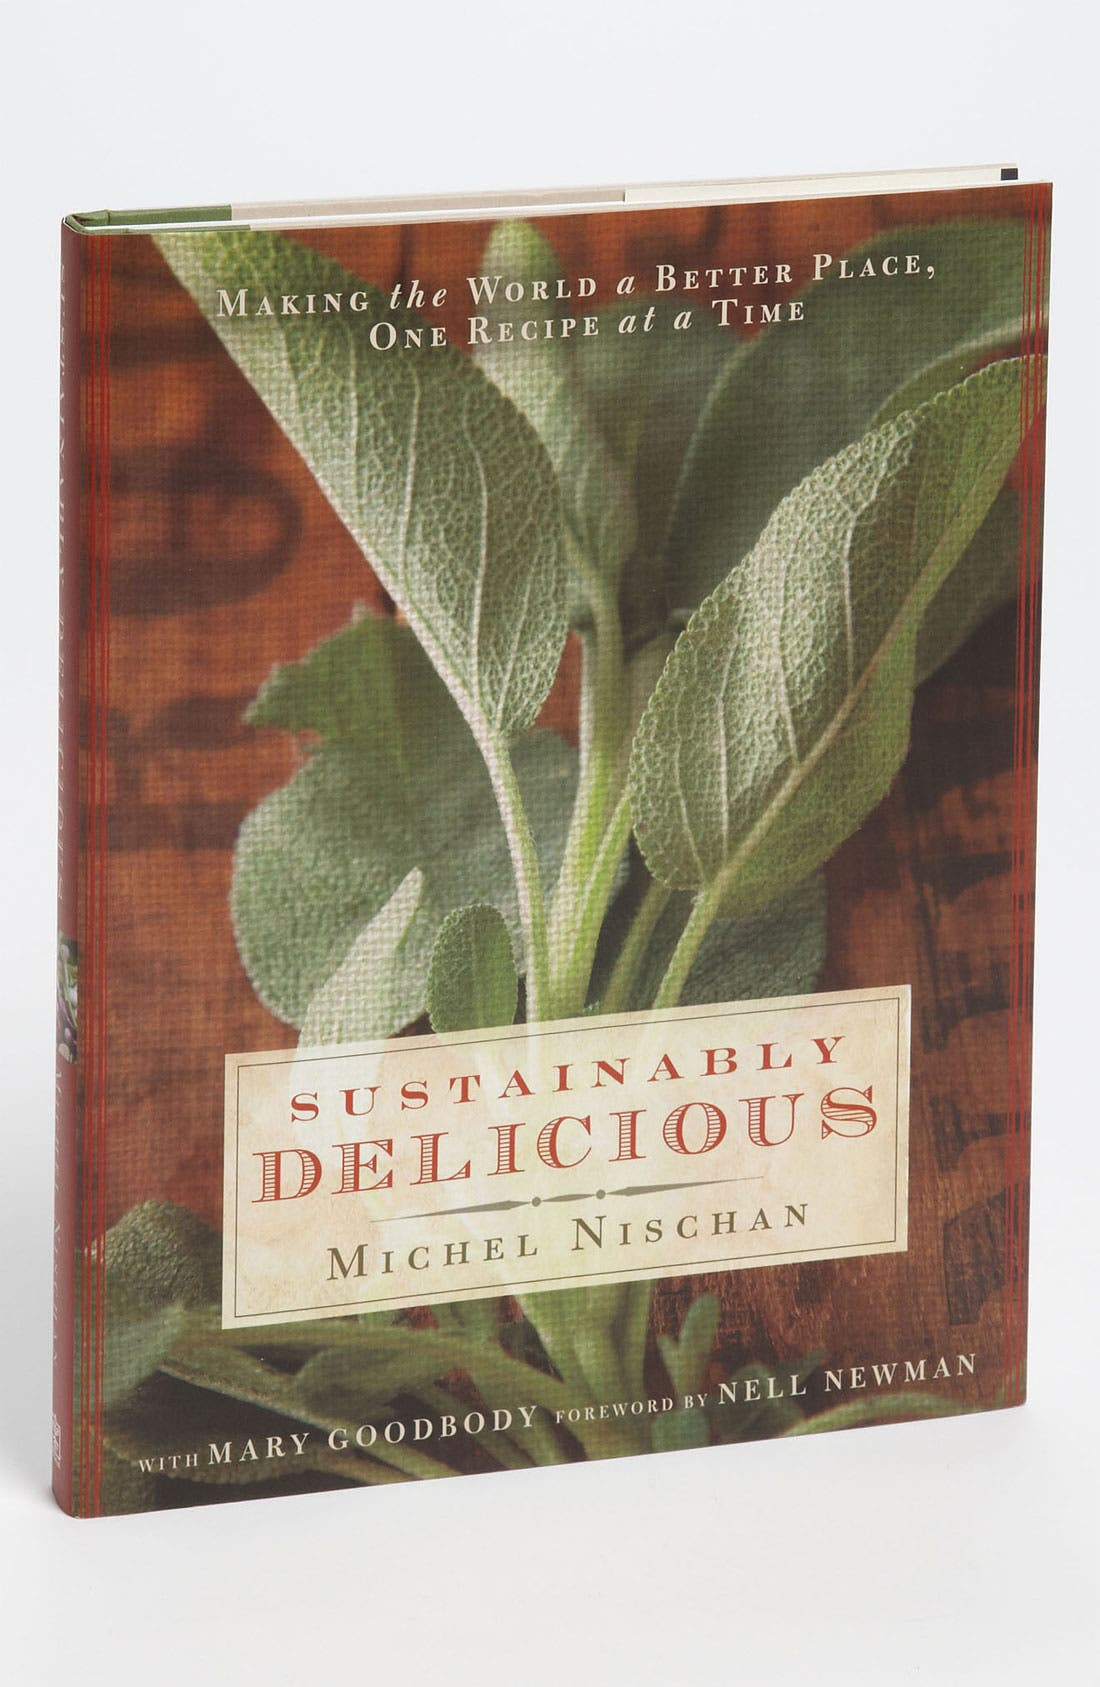 Alternate Image 1 Selected - 'Sustainably Delicious' Cookbook